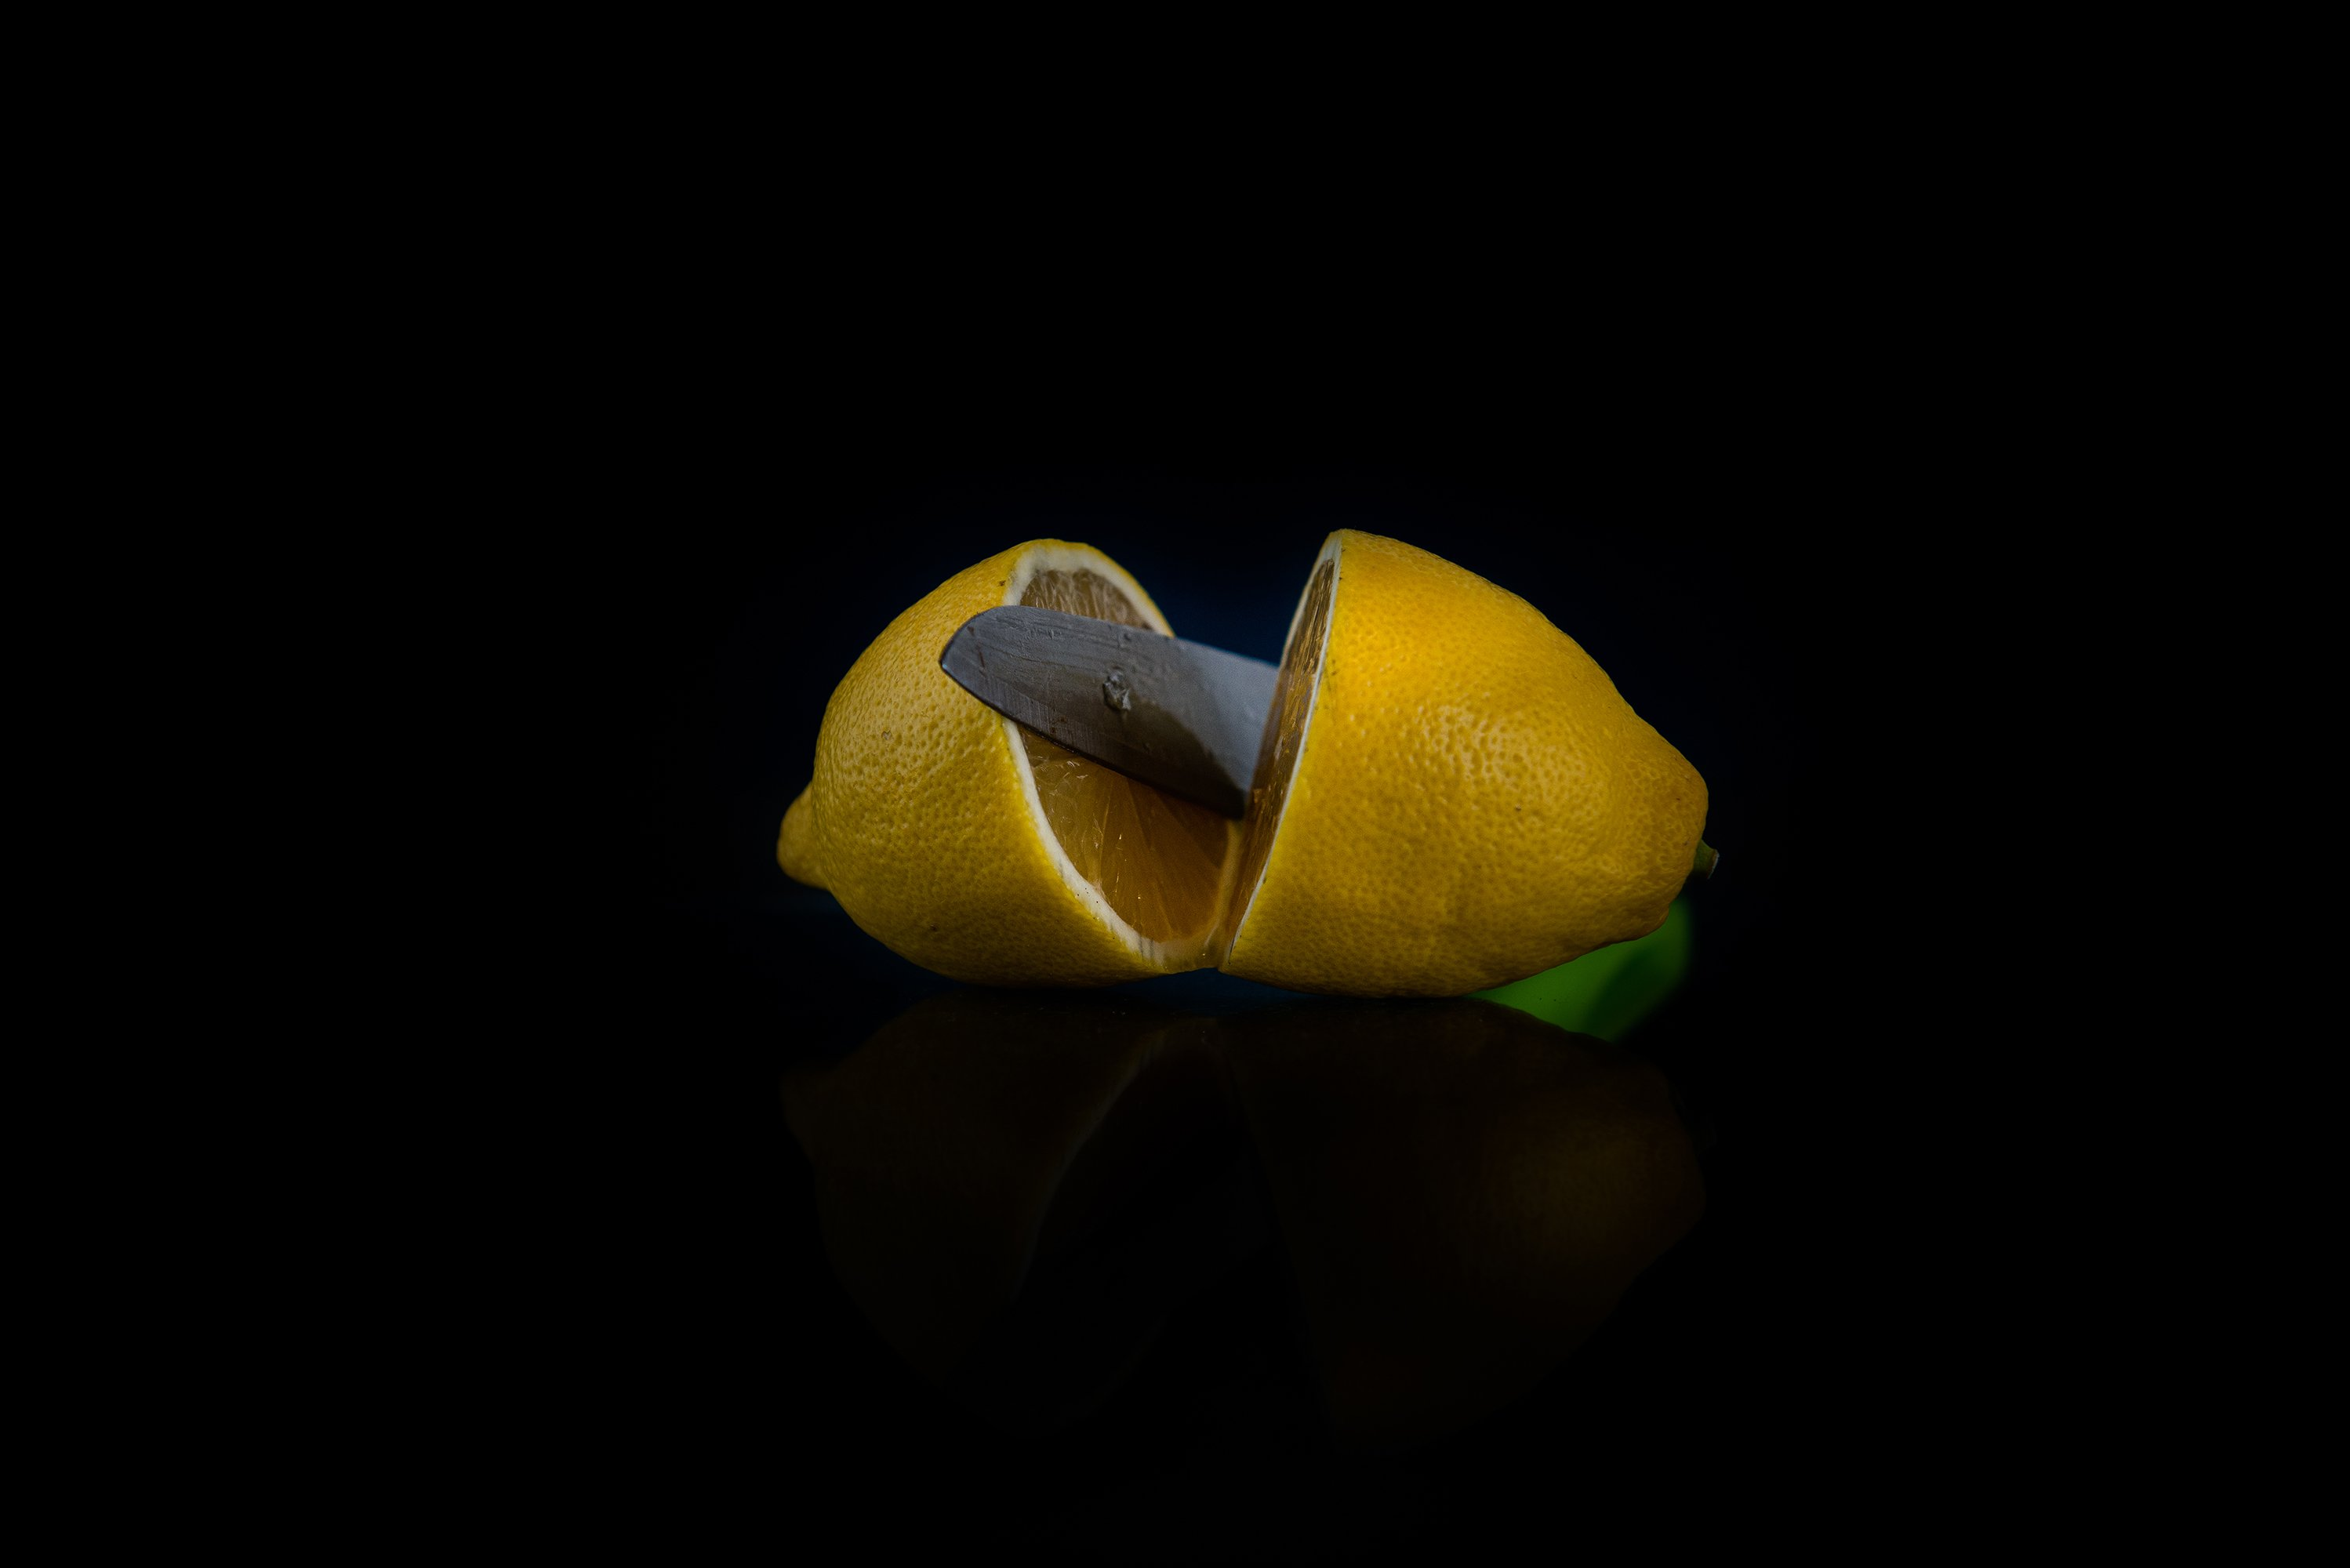 two halves of lemon cut with a knife on a black background example image 1